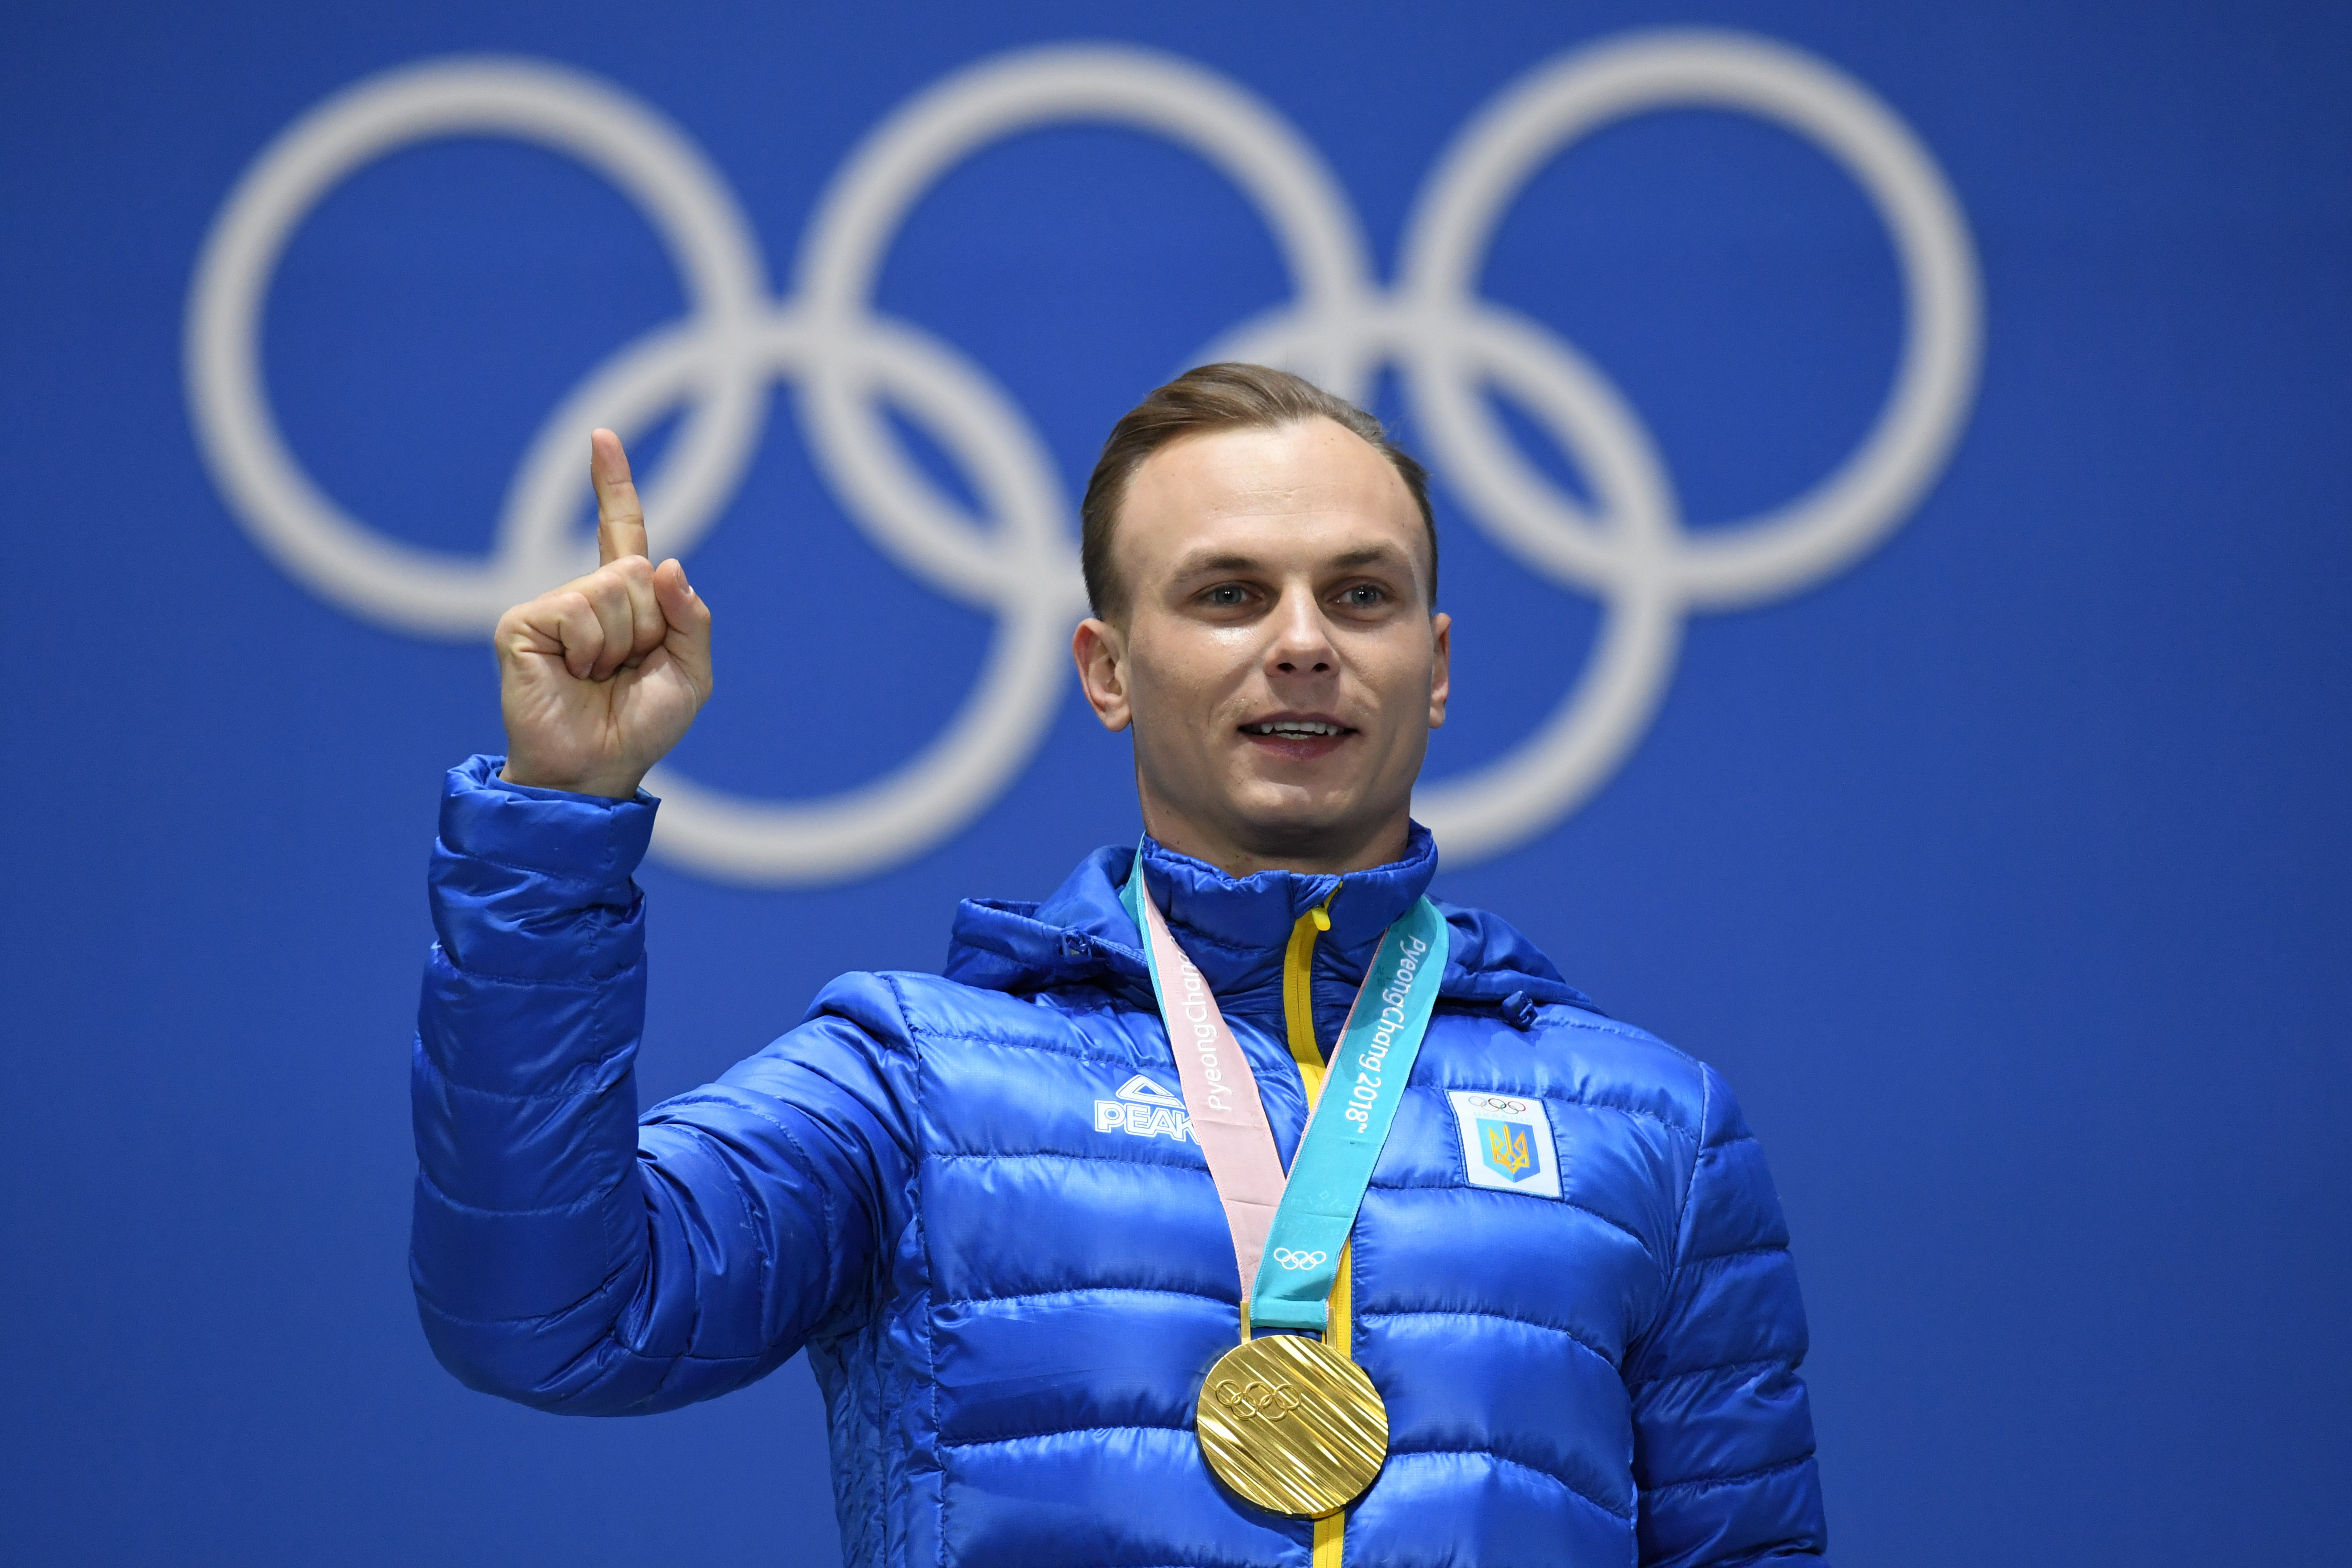 Ukraine's gold medallist Oleksandr Abramenko gestures on the podium during the medal ceremony for the freestyle skiing Men's Aerials